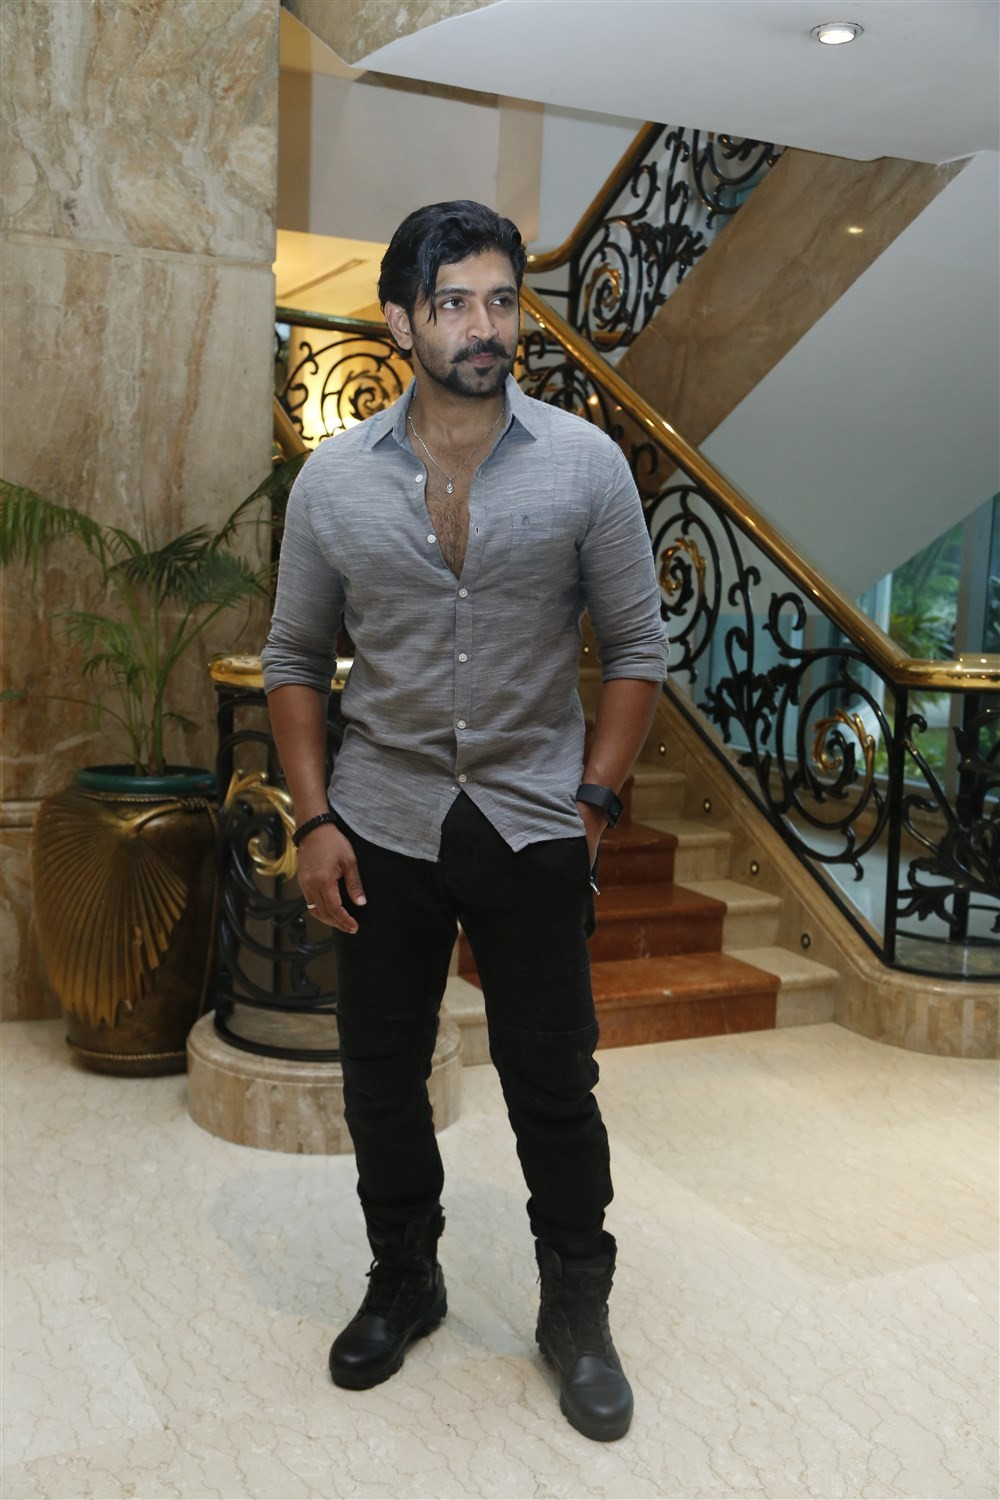 Arun Vijay,Christmas Cake Mixing Ceremony,Christmas Cake,Arun Vijay latest pics,Arun Vijay latest images,Arun Vijay latest photos,Arun Vijay latest stills,Arun Vijay latest pictures